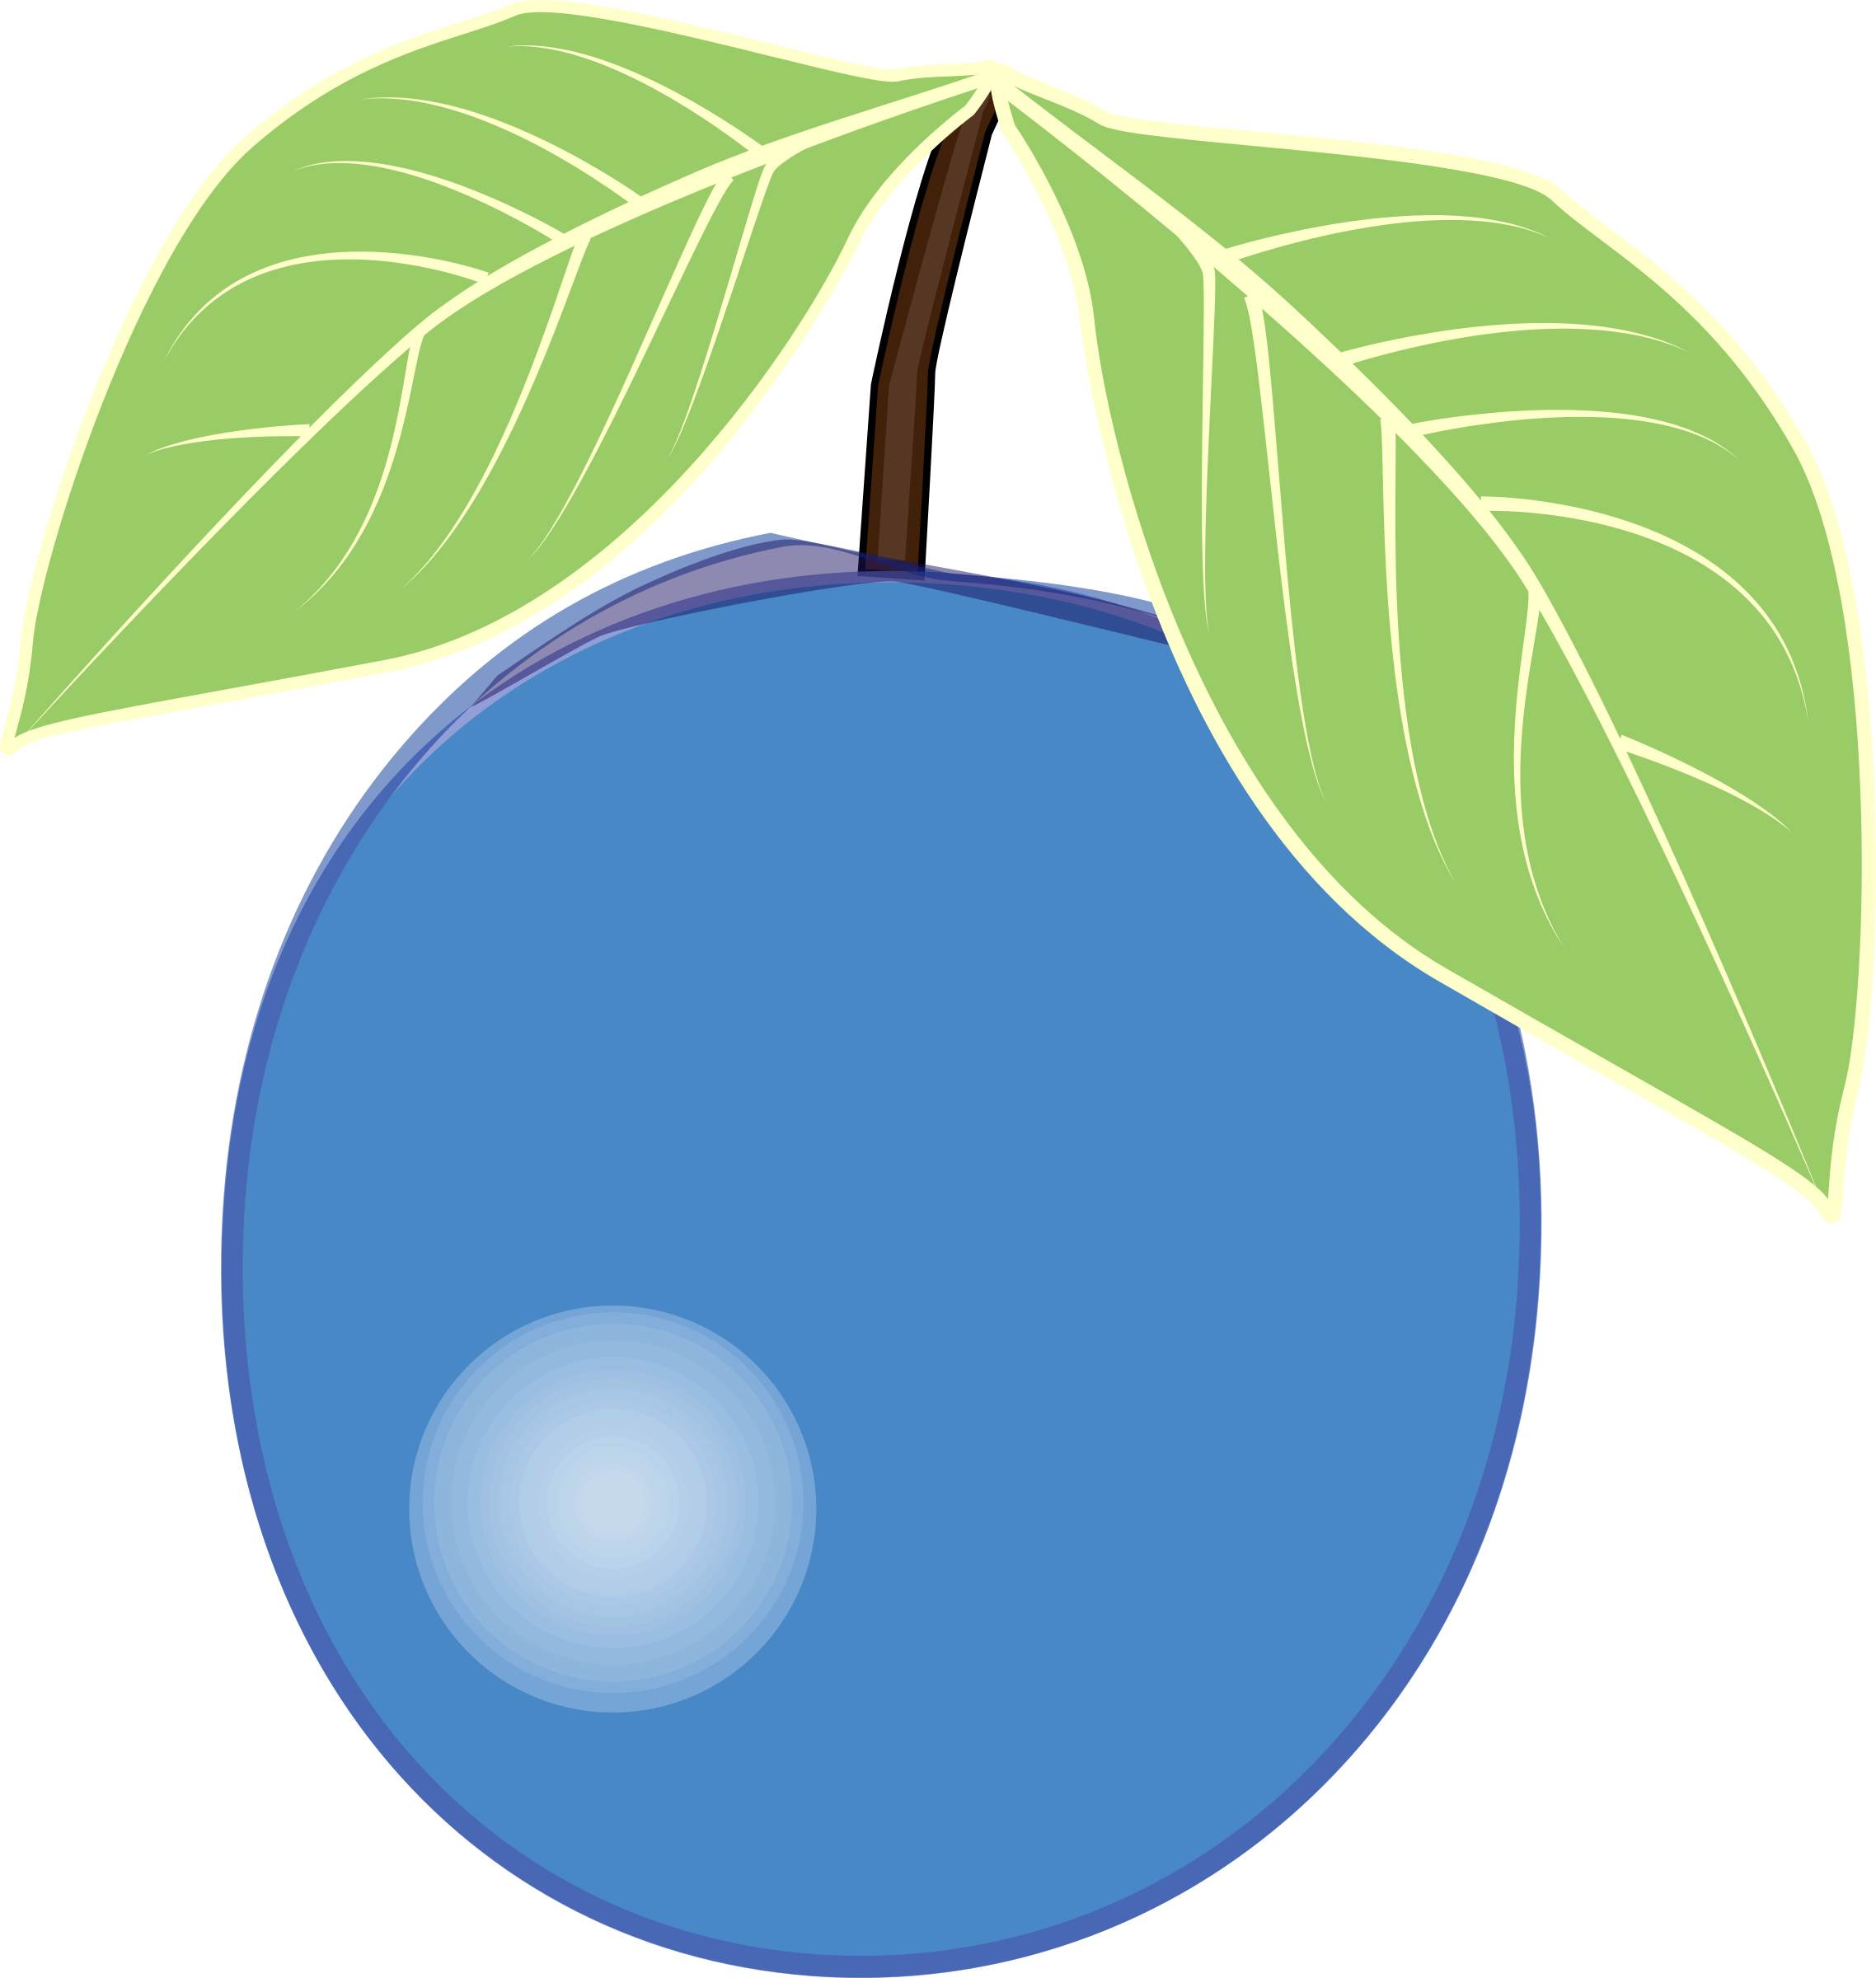 Clipart - Blueberry